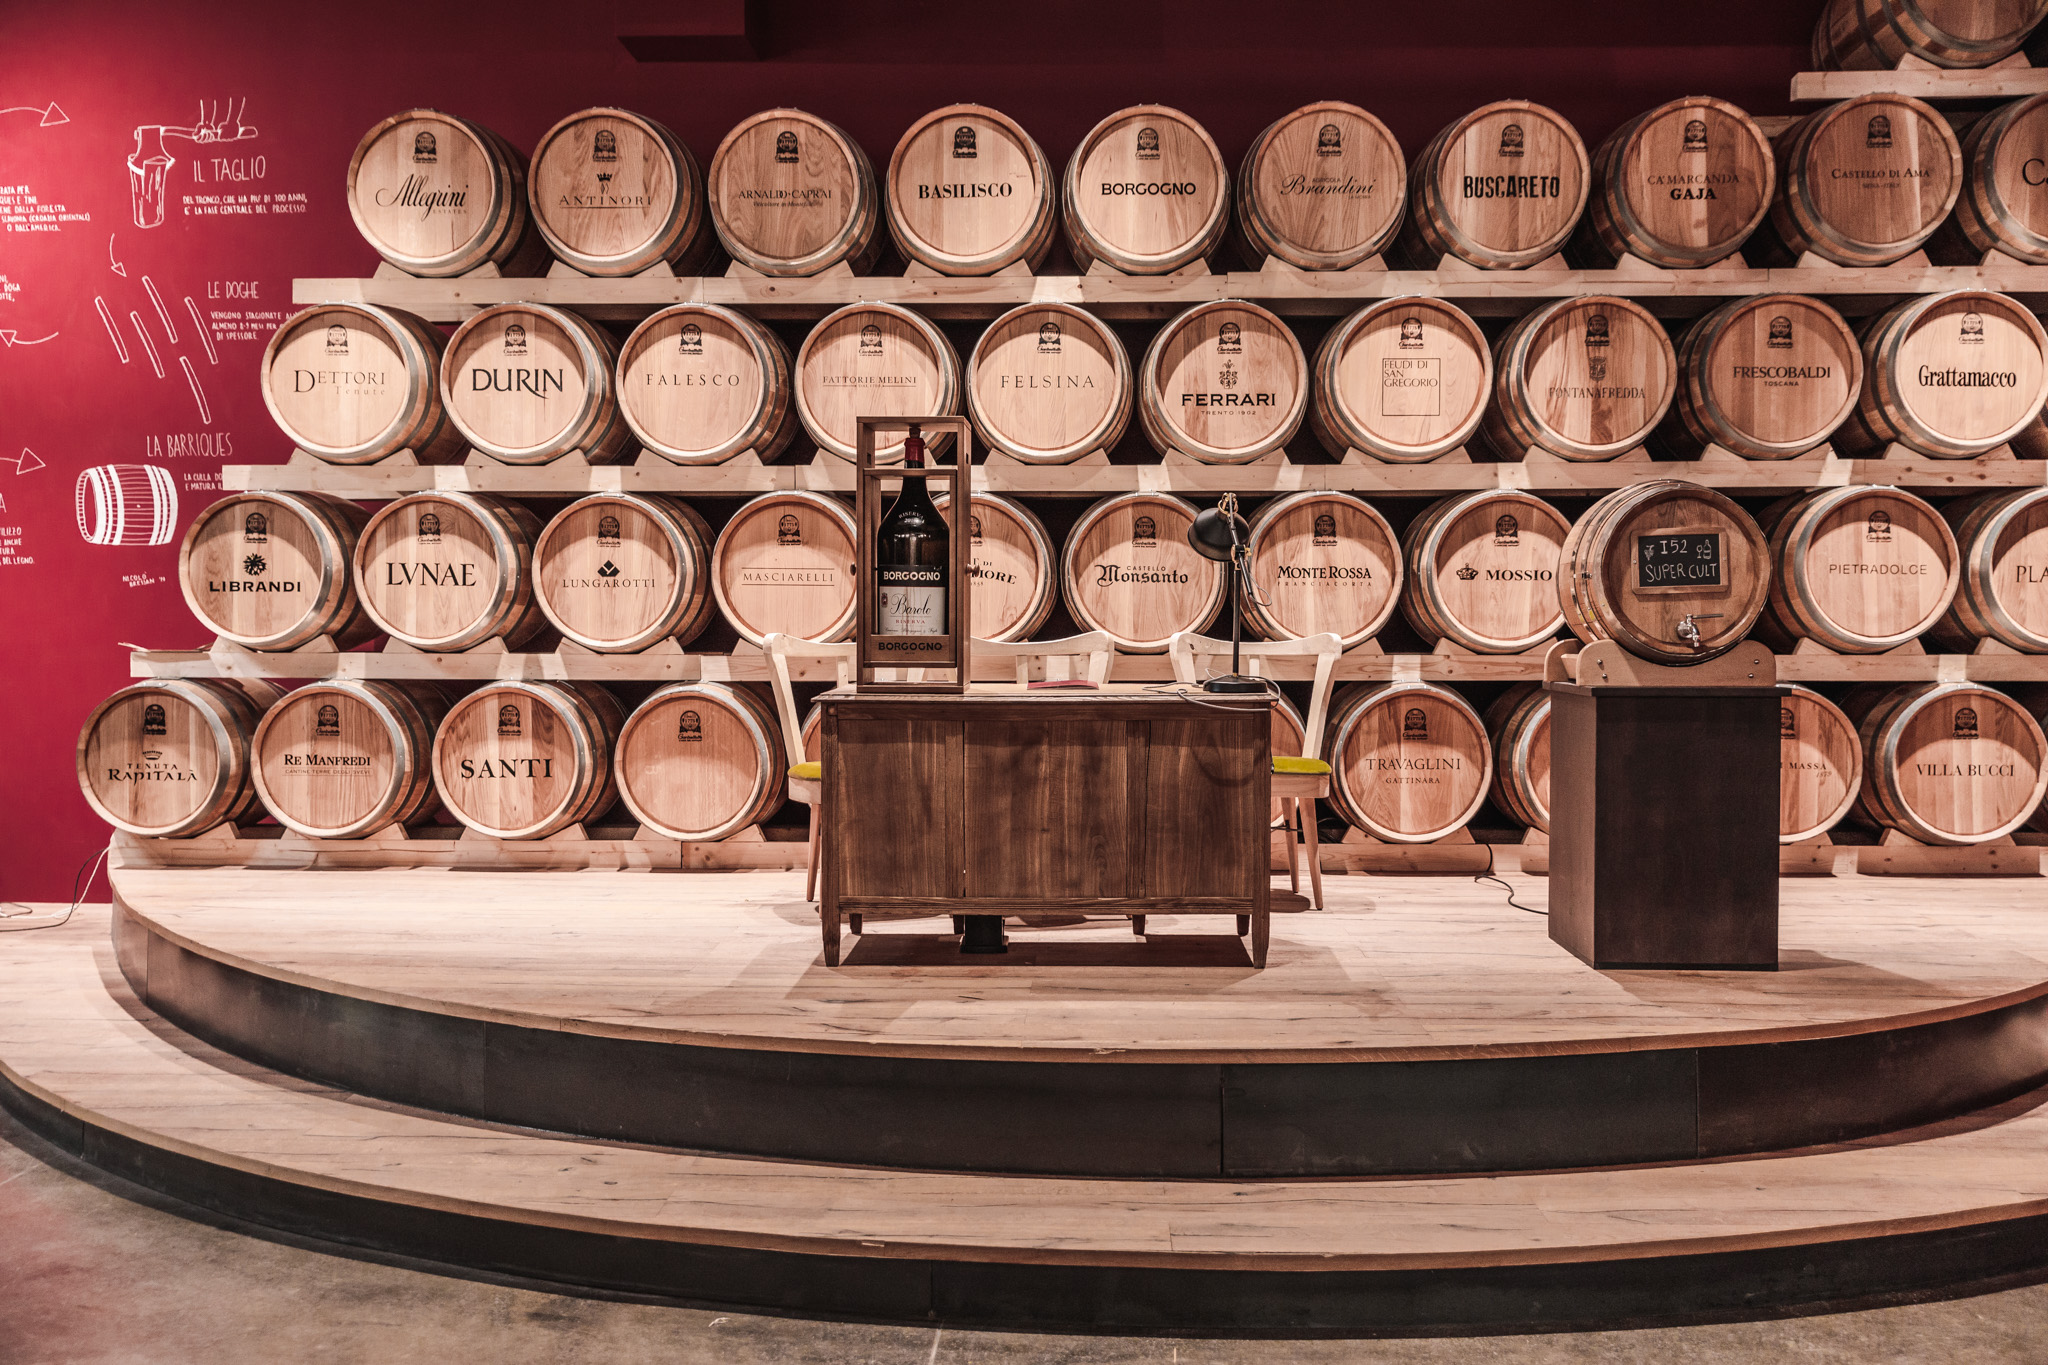 A place for wine lectures